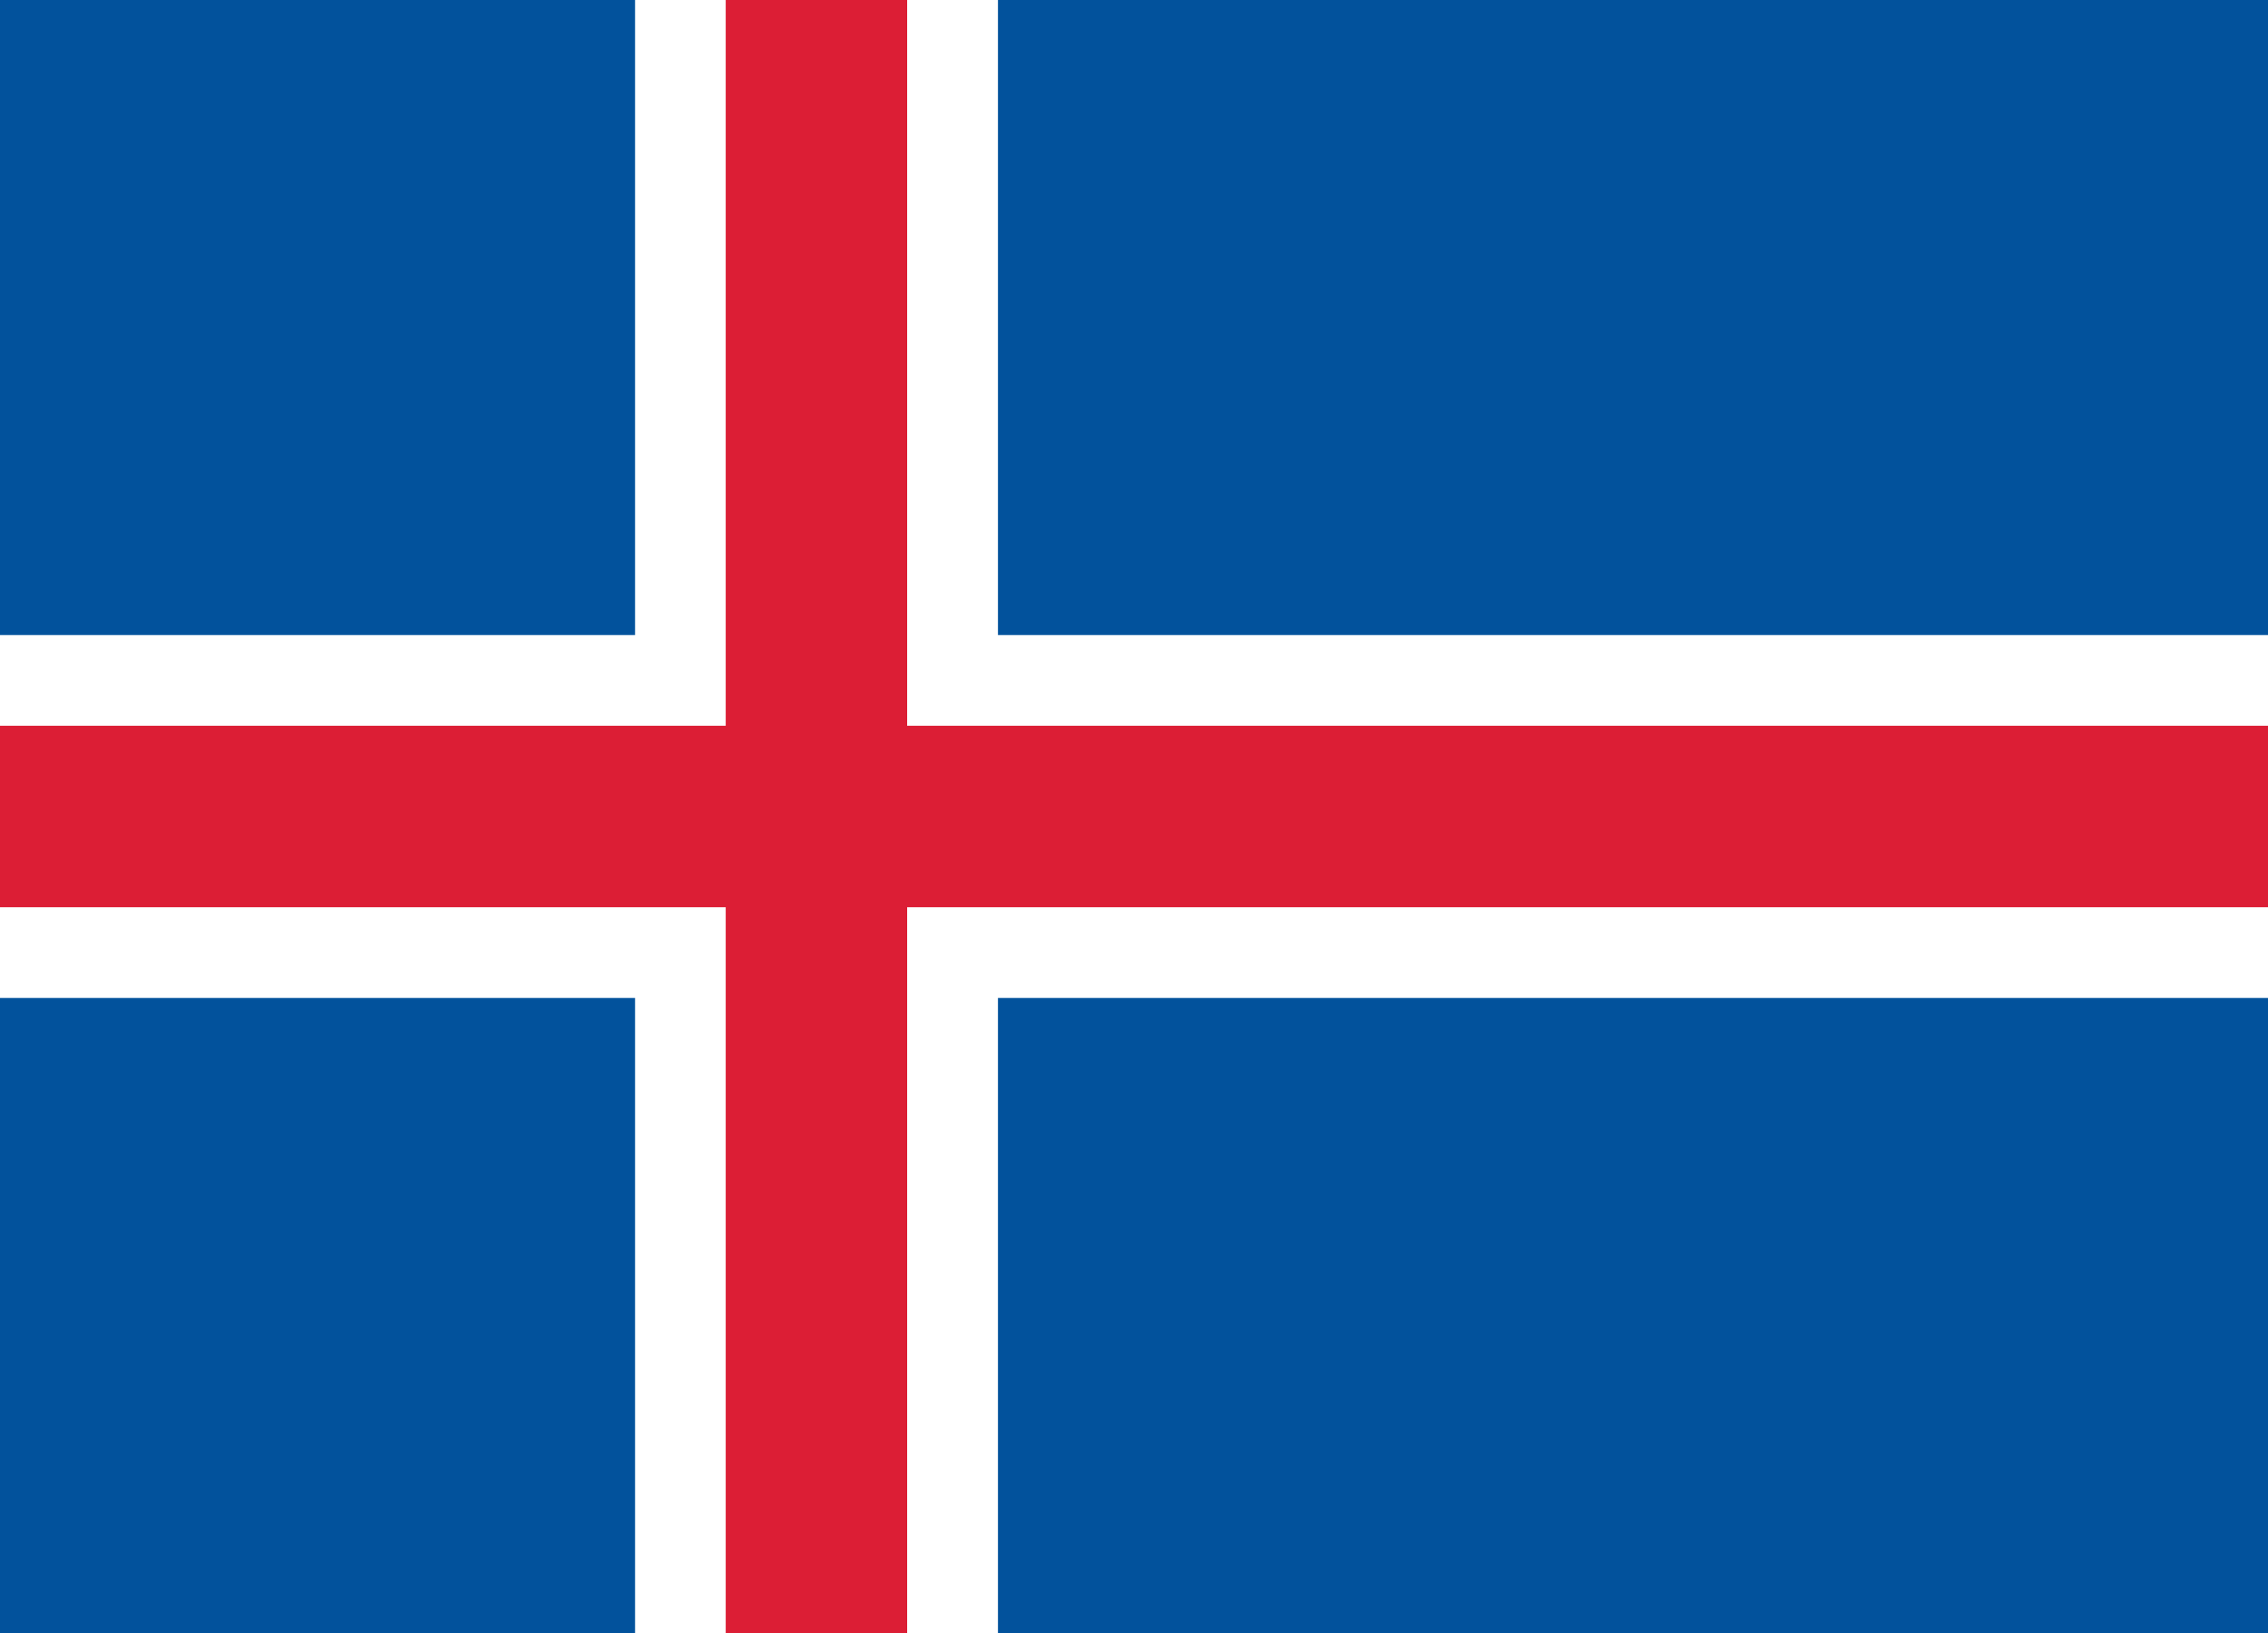 Pin By White Diary On Sweden Iceland Denmark Norway Finland 5 Iceland Flag Flag Coloring Pages Iceland